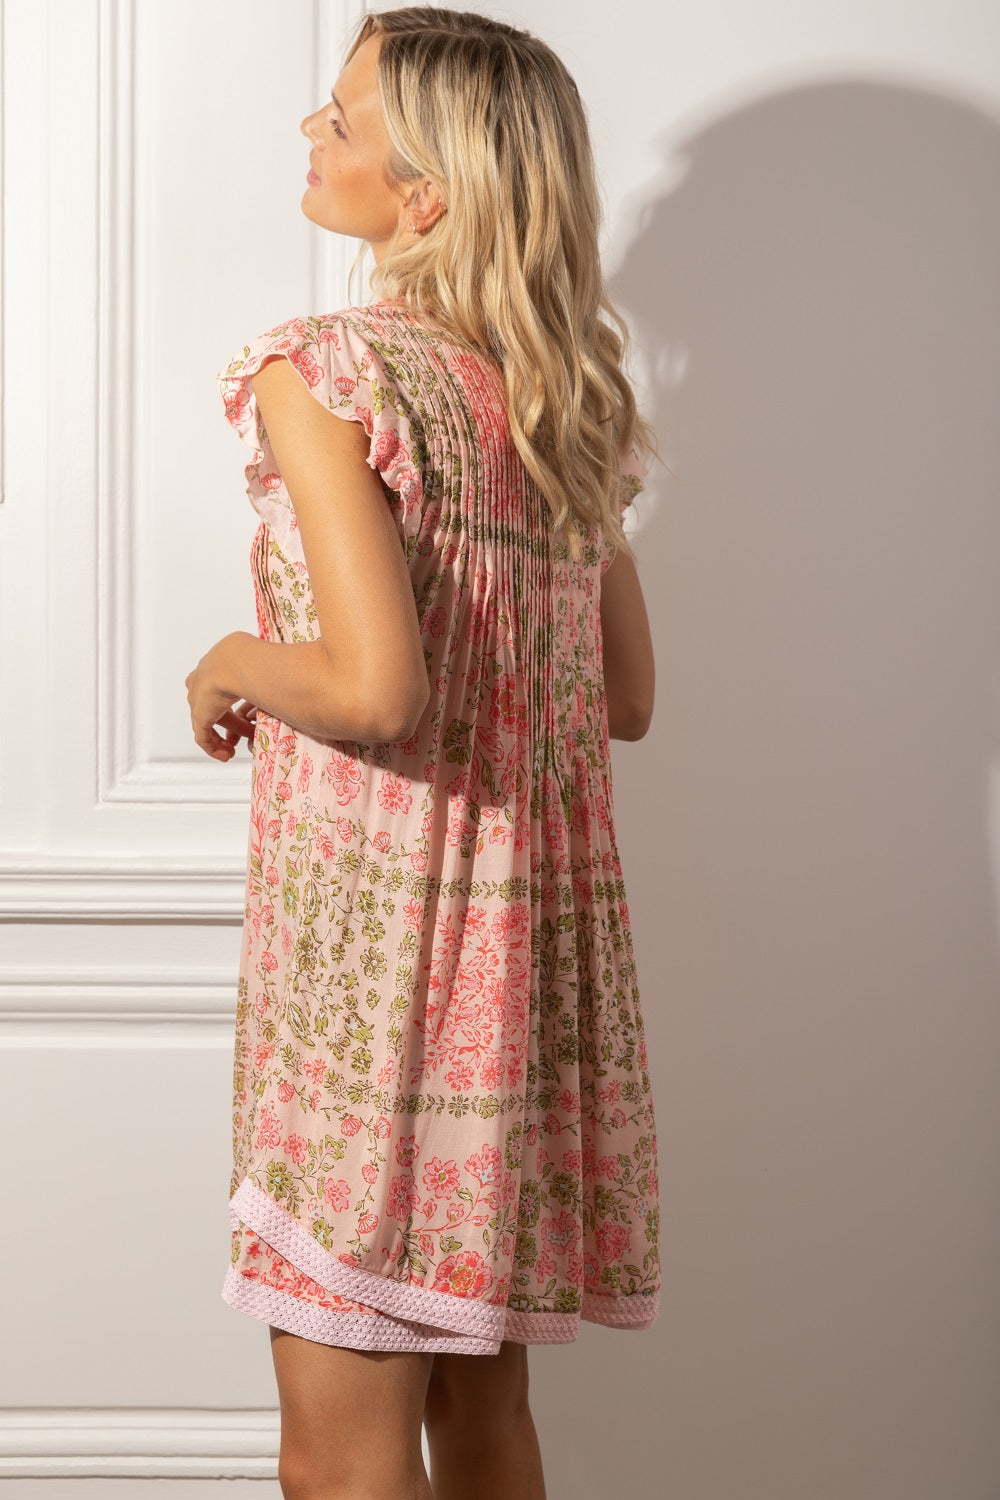 Mini Dress Sasha Lace Trimmed - Pink Foulard